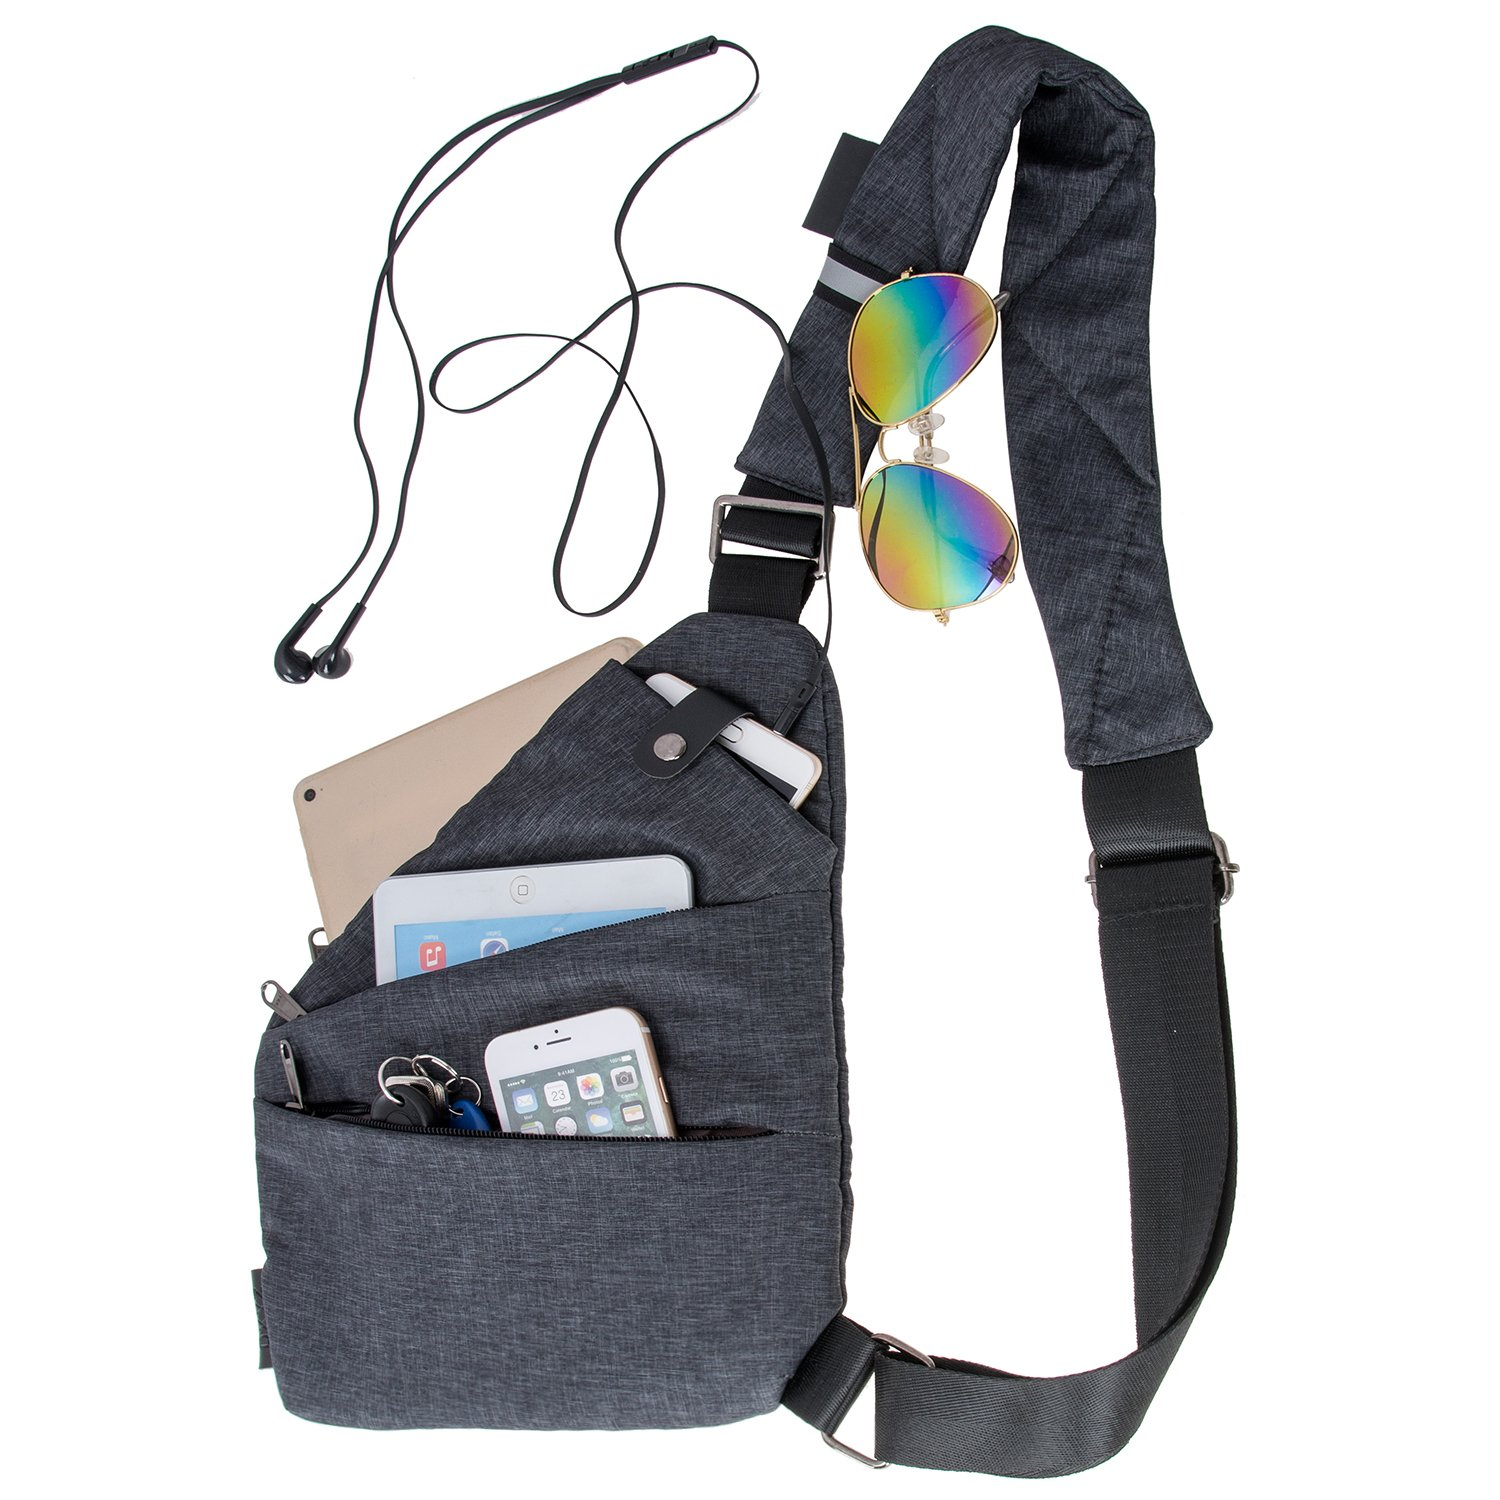 LEYAN Sling Bag Shoulder Chest Bags Cross Body Backpack Multipurpose Anti Theft Pack Daypack Bags For Outdoor Sport Travel Hiking (Right hand)